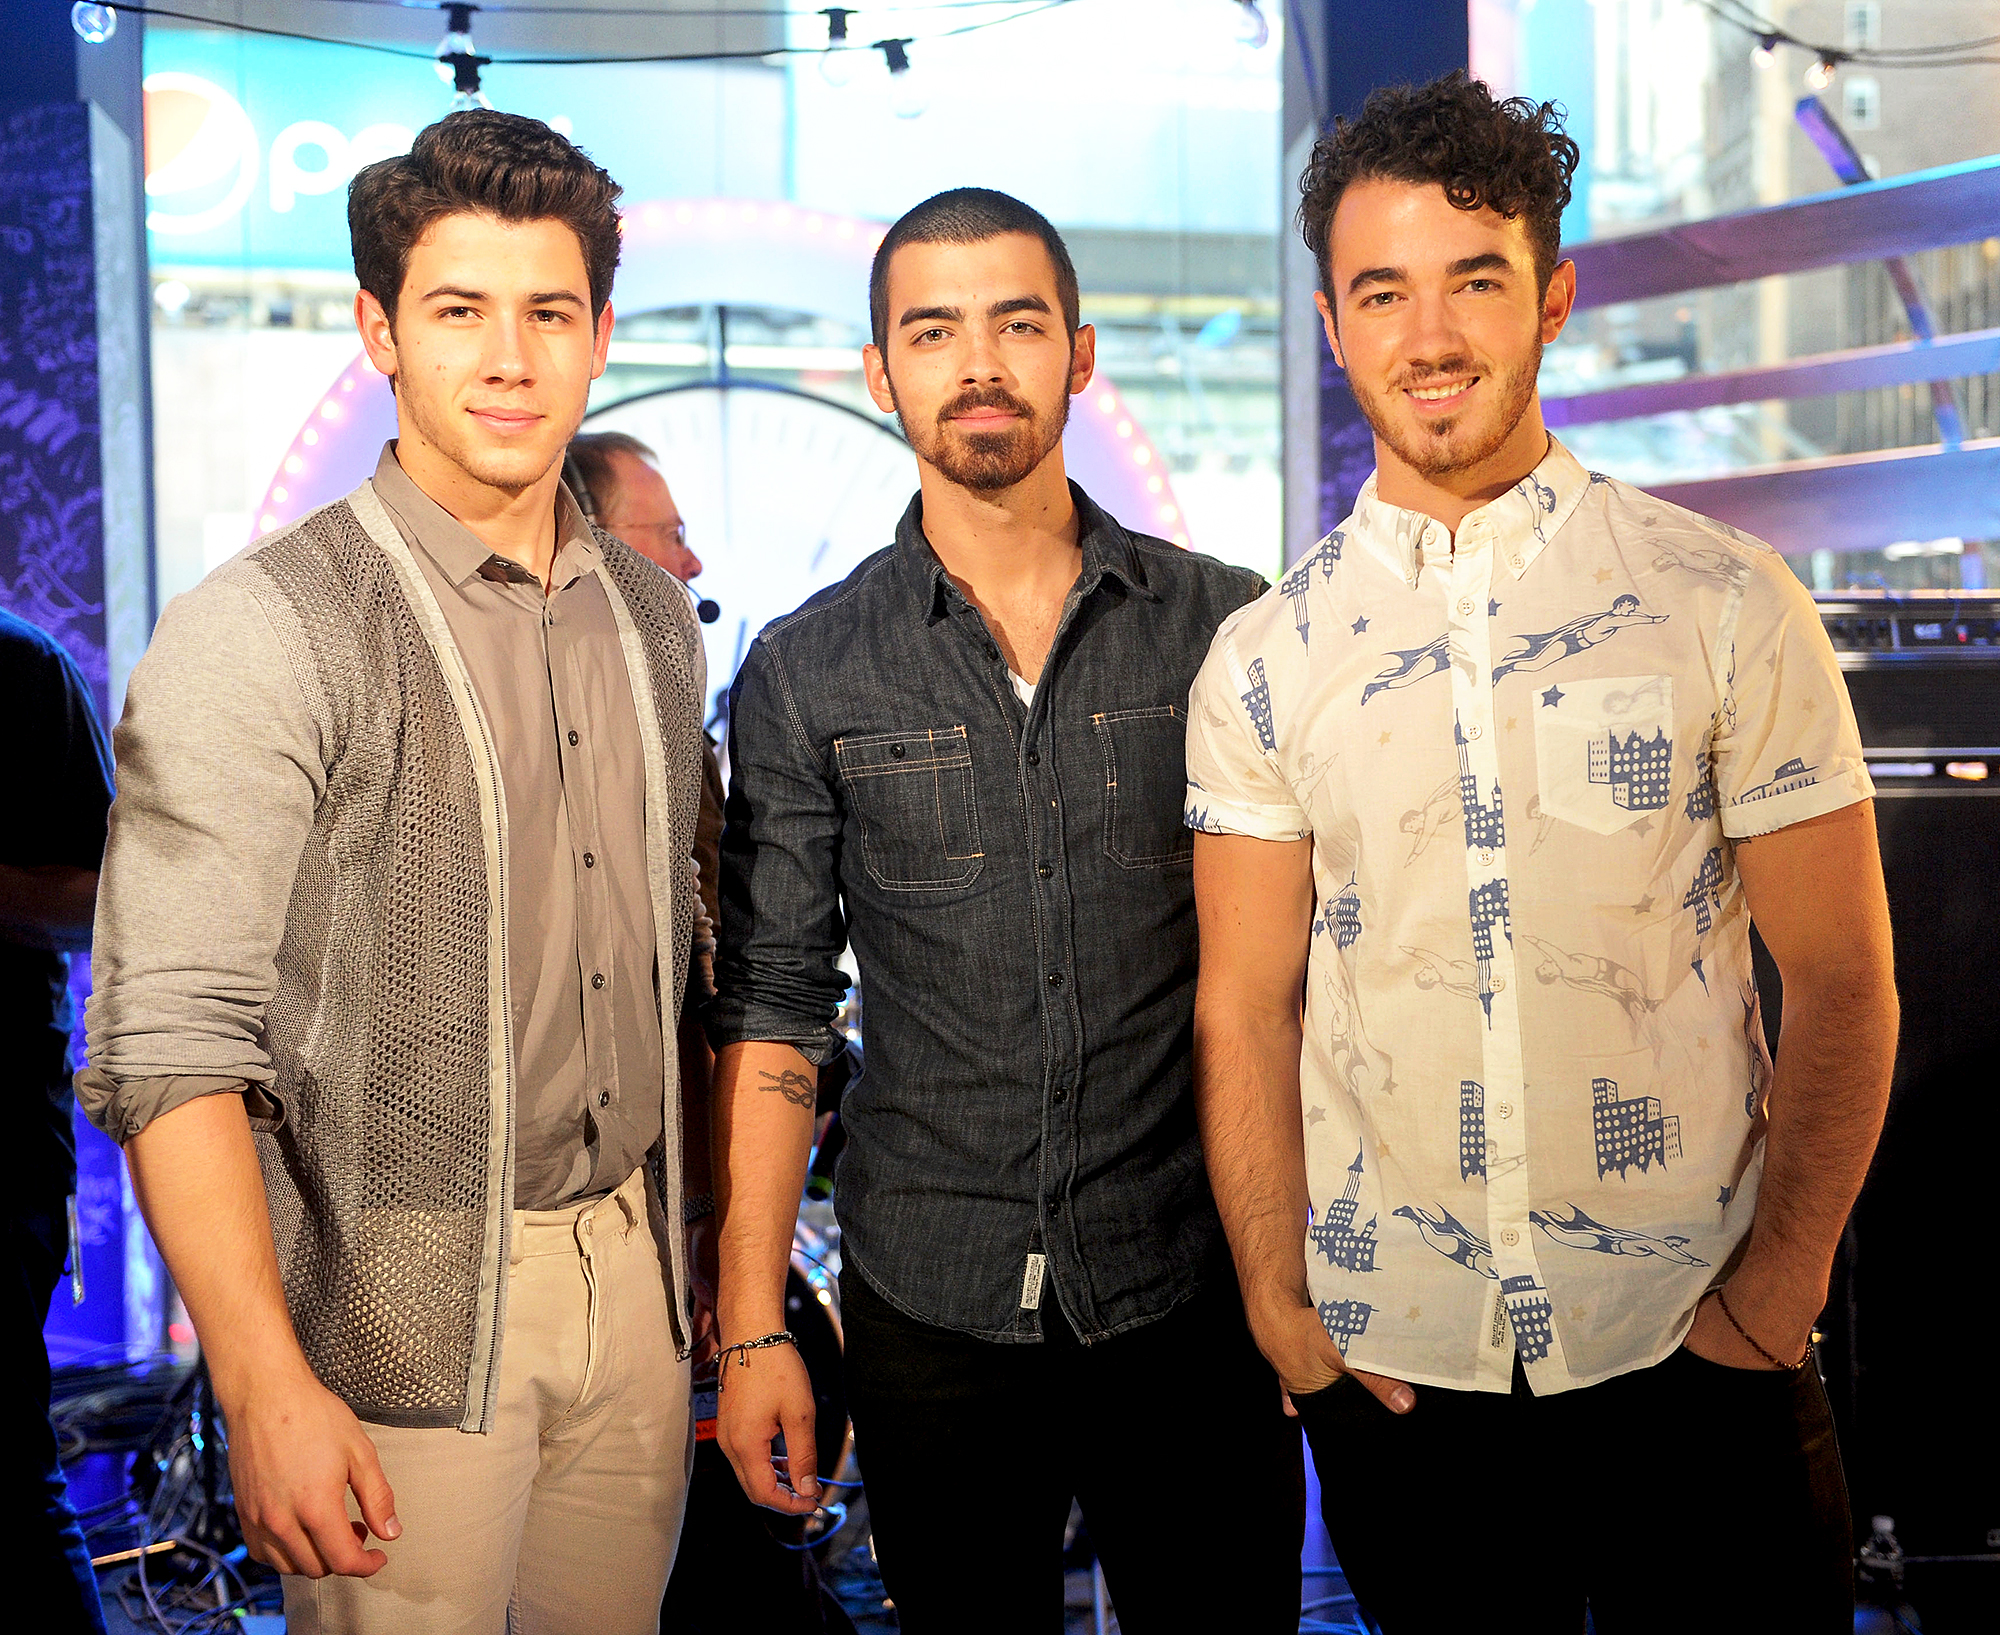 adult fanfiction brothers jonas